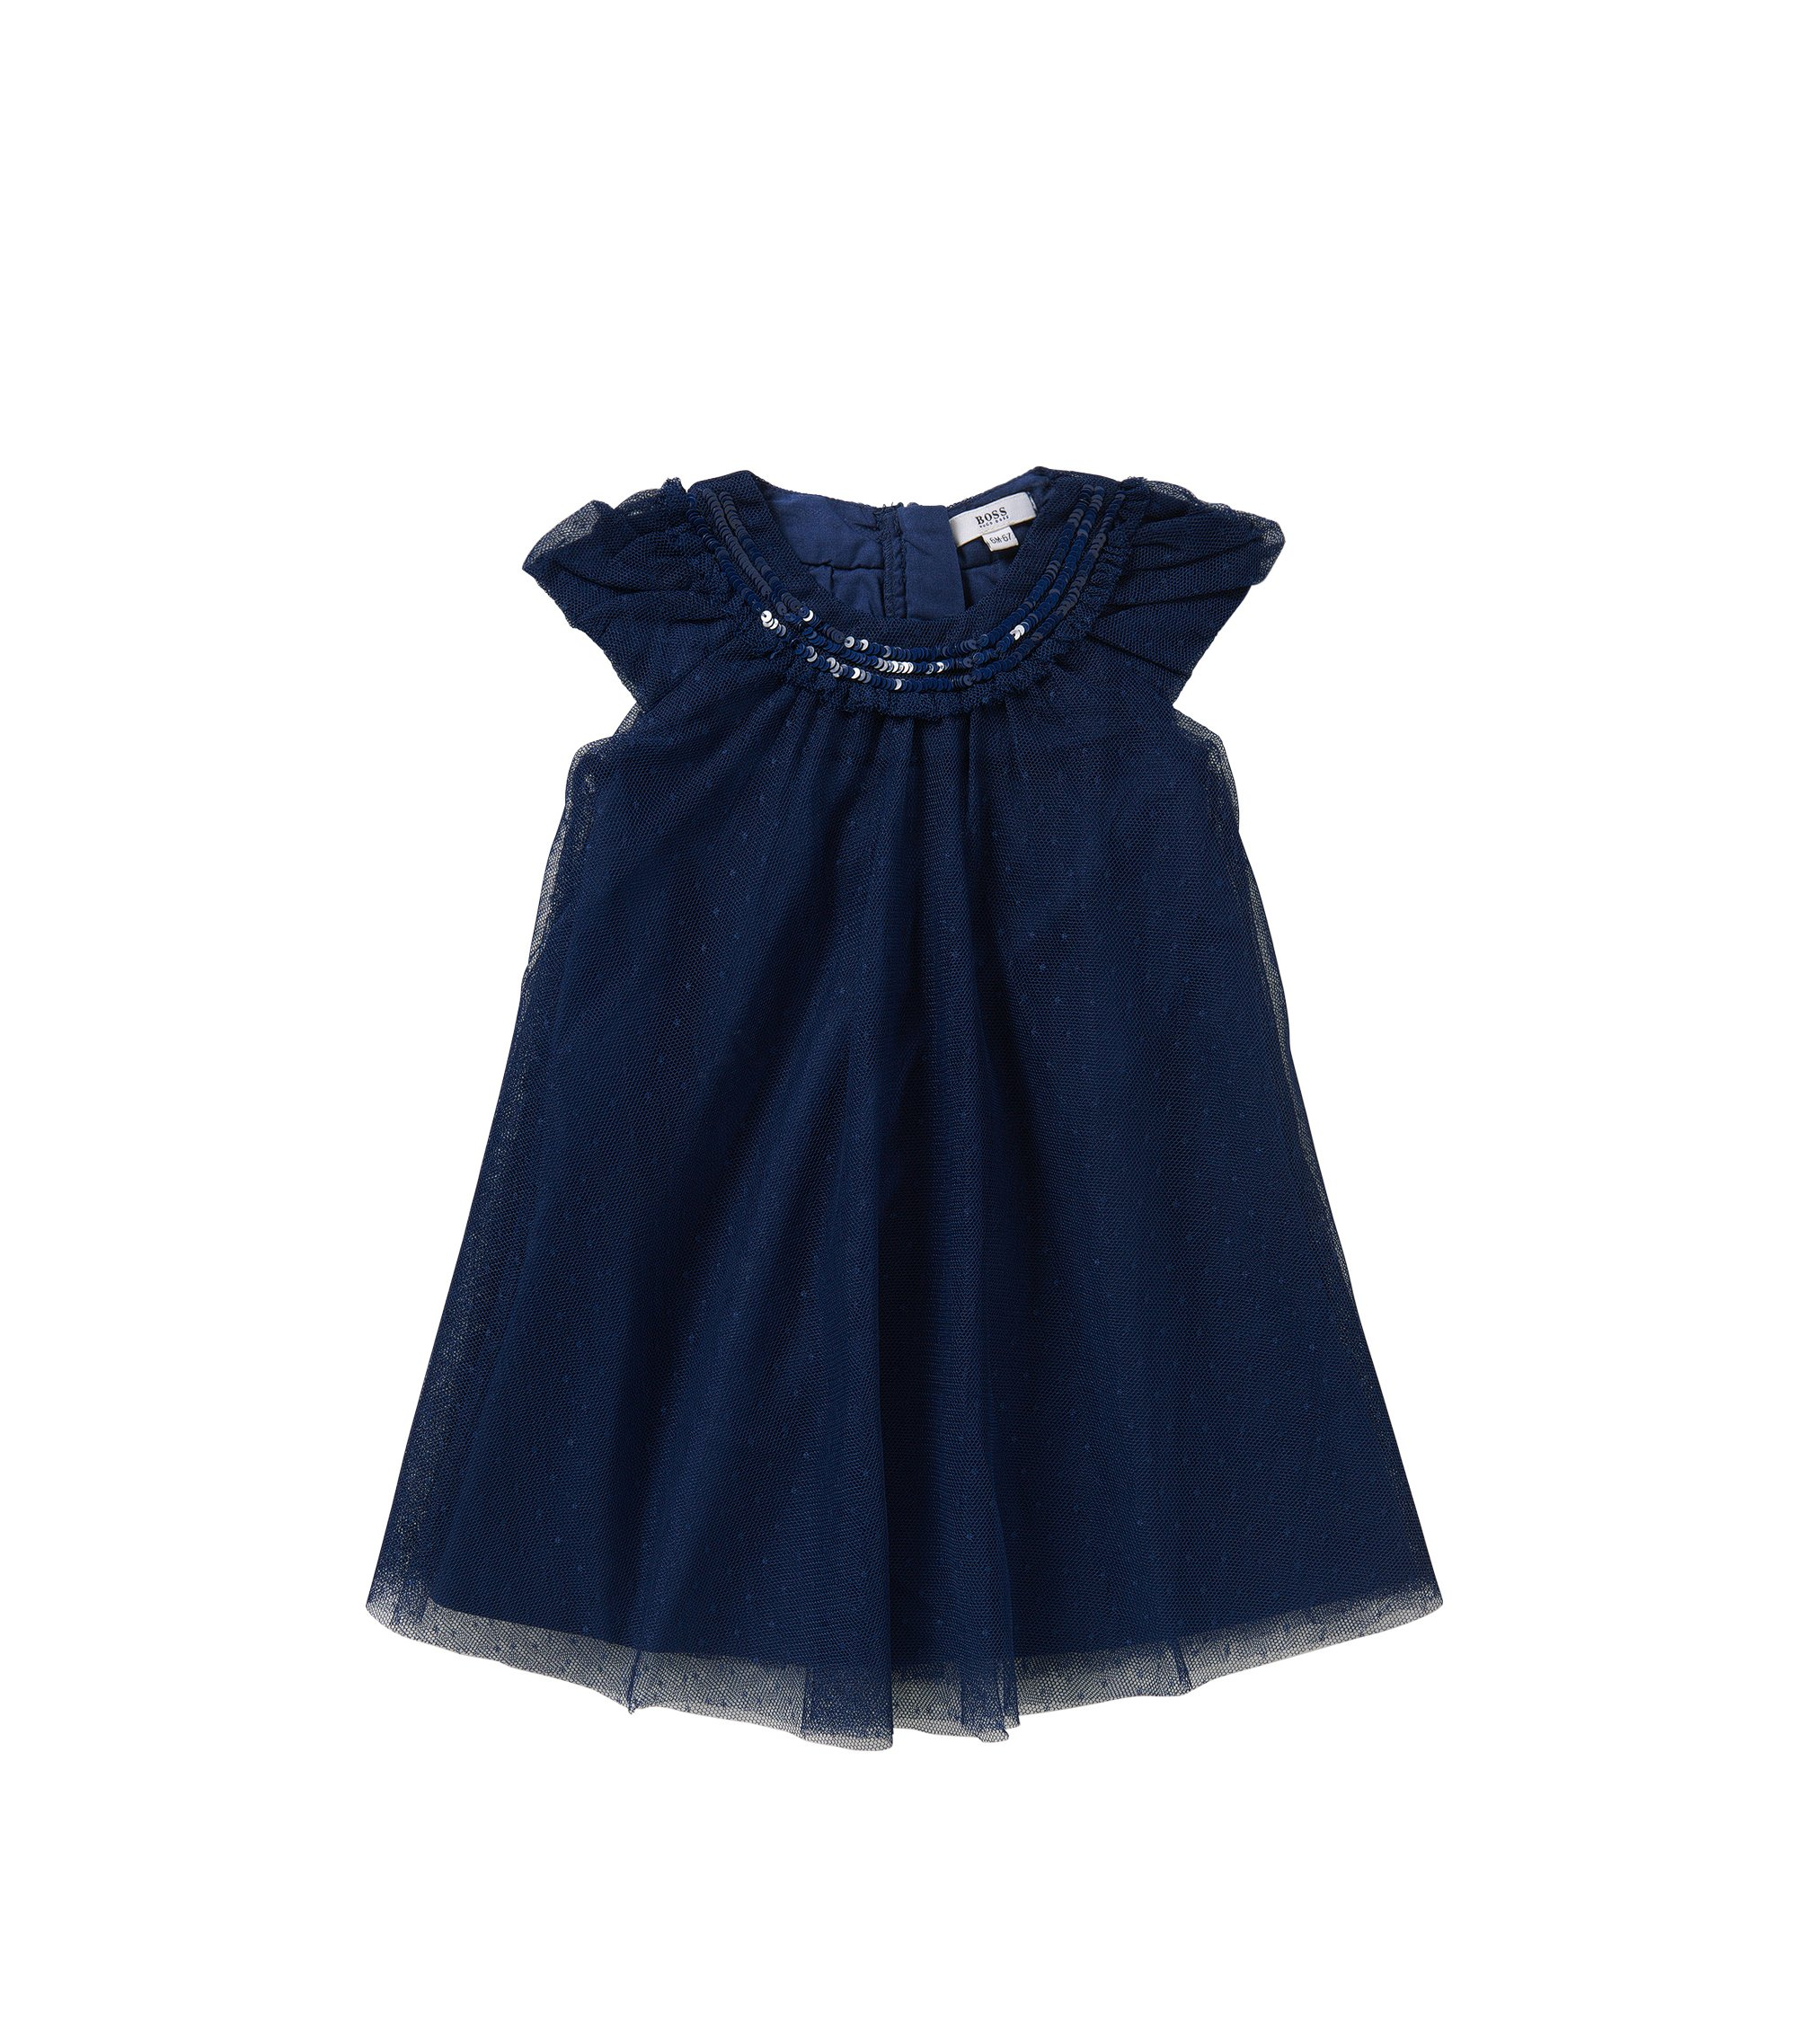 Baby-Kleid mit Pailletten-Applikation: 'J12151', Dunkelblau